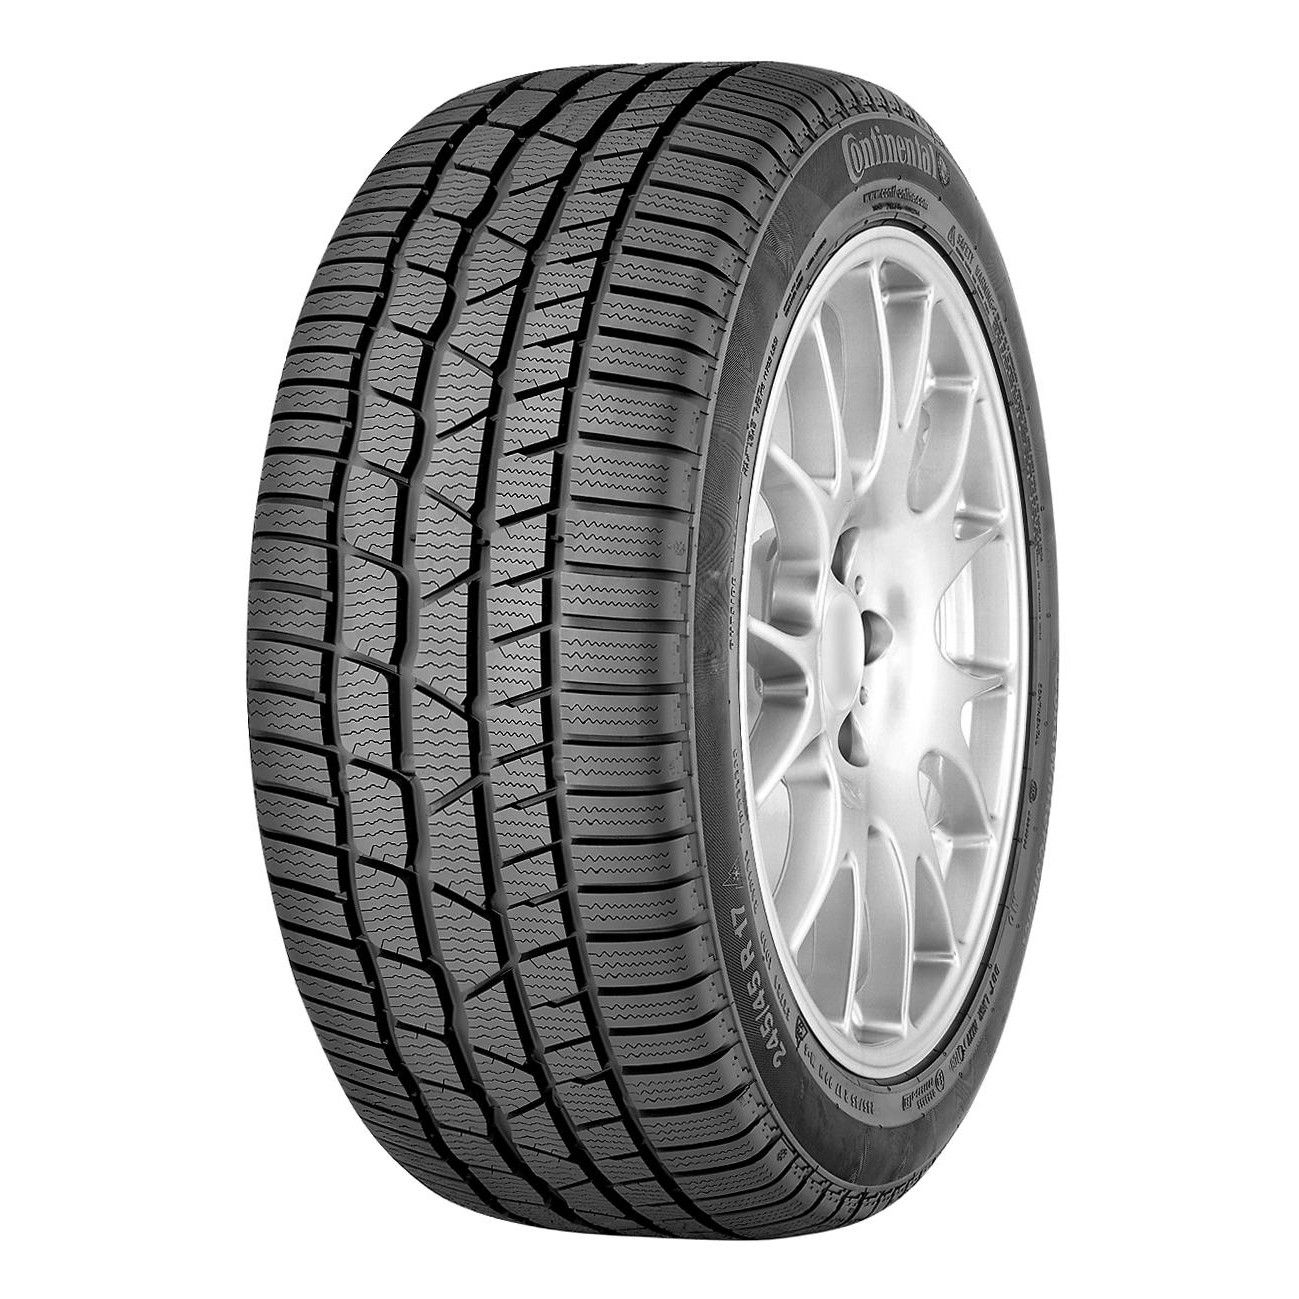 Anvelopa Iarna Continental Winter Contact Ts830p Run Flat 225/55RR16 95H